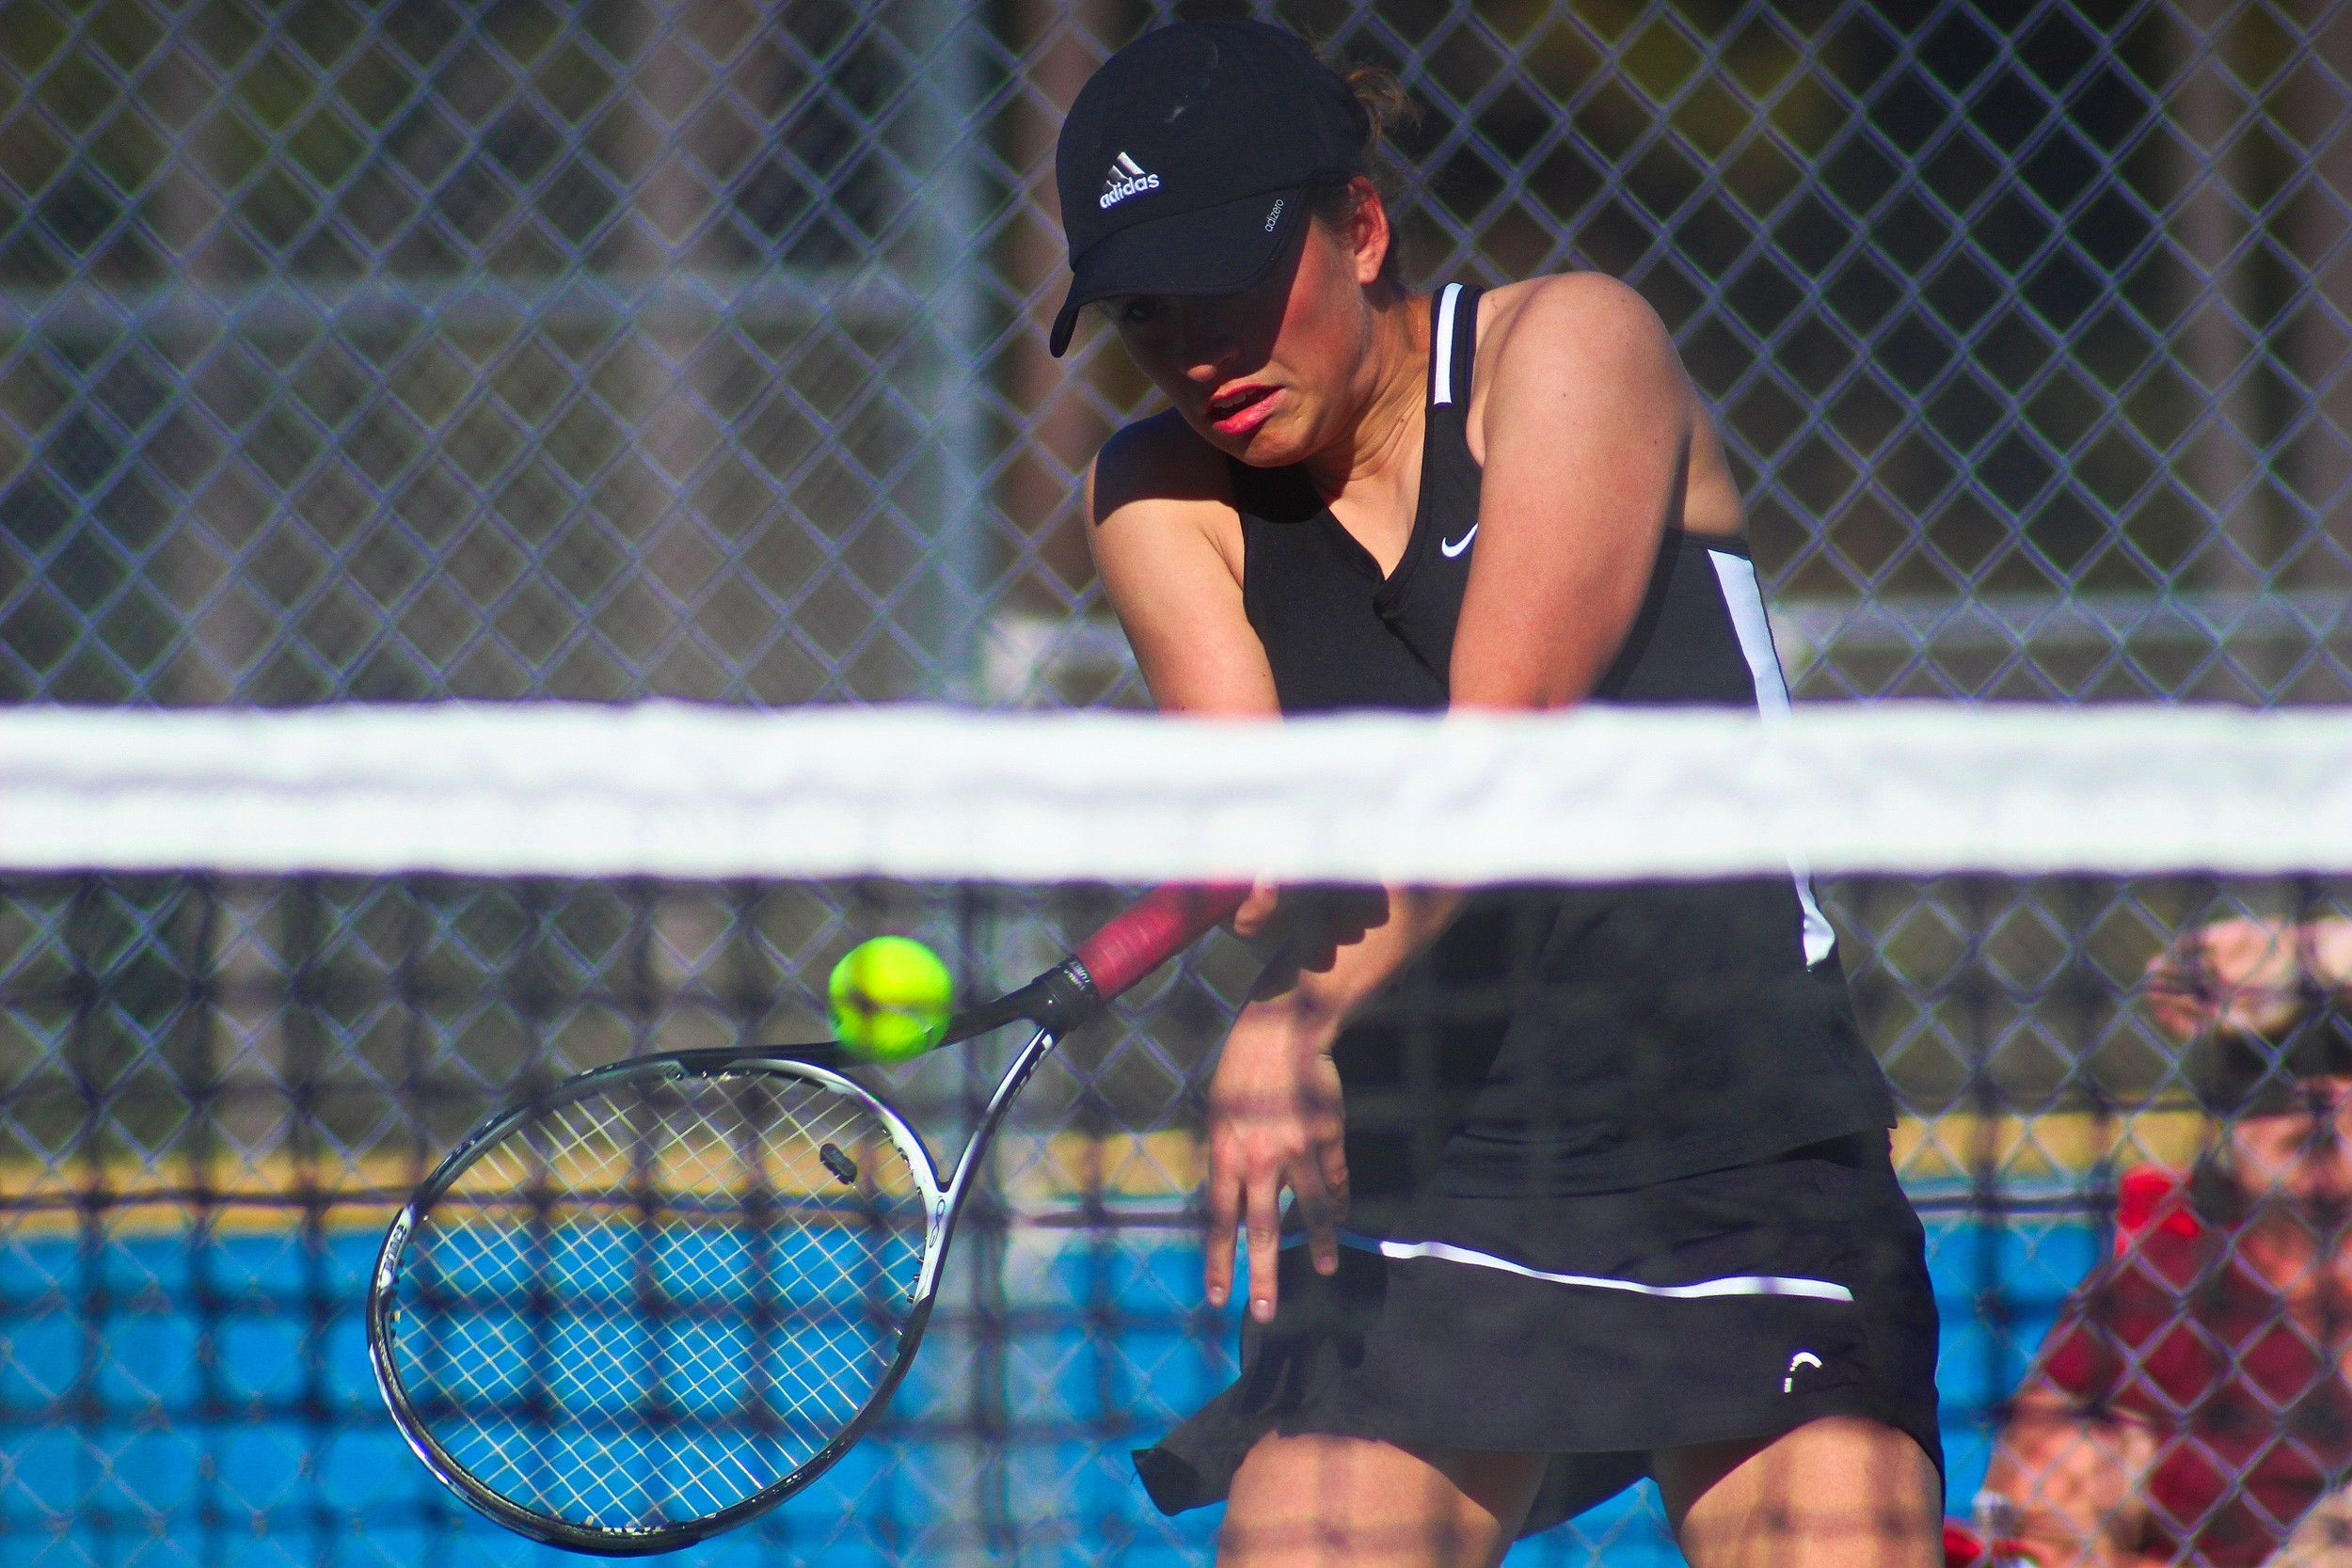 Ridgeview High's Elaine Fulger gets a strong shot in doubles action against Middleburg.